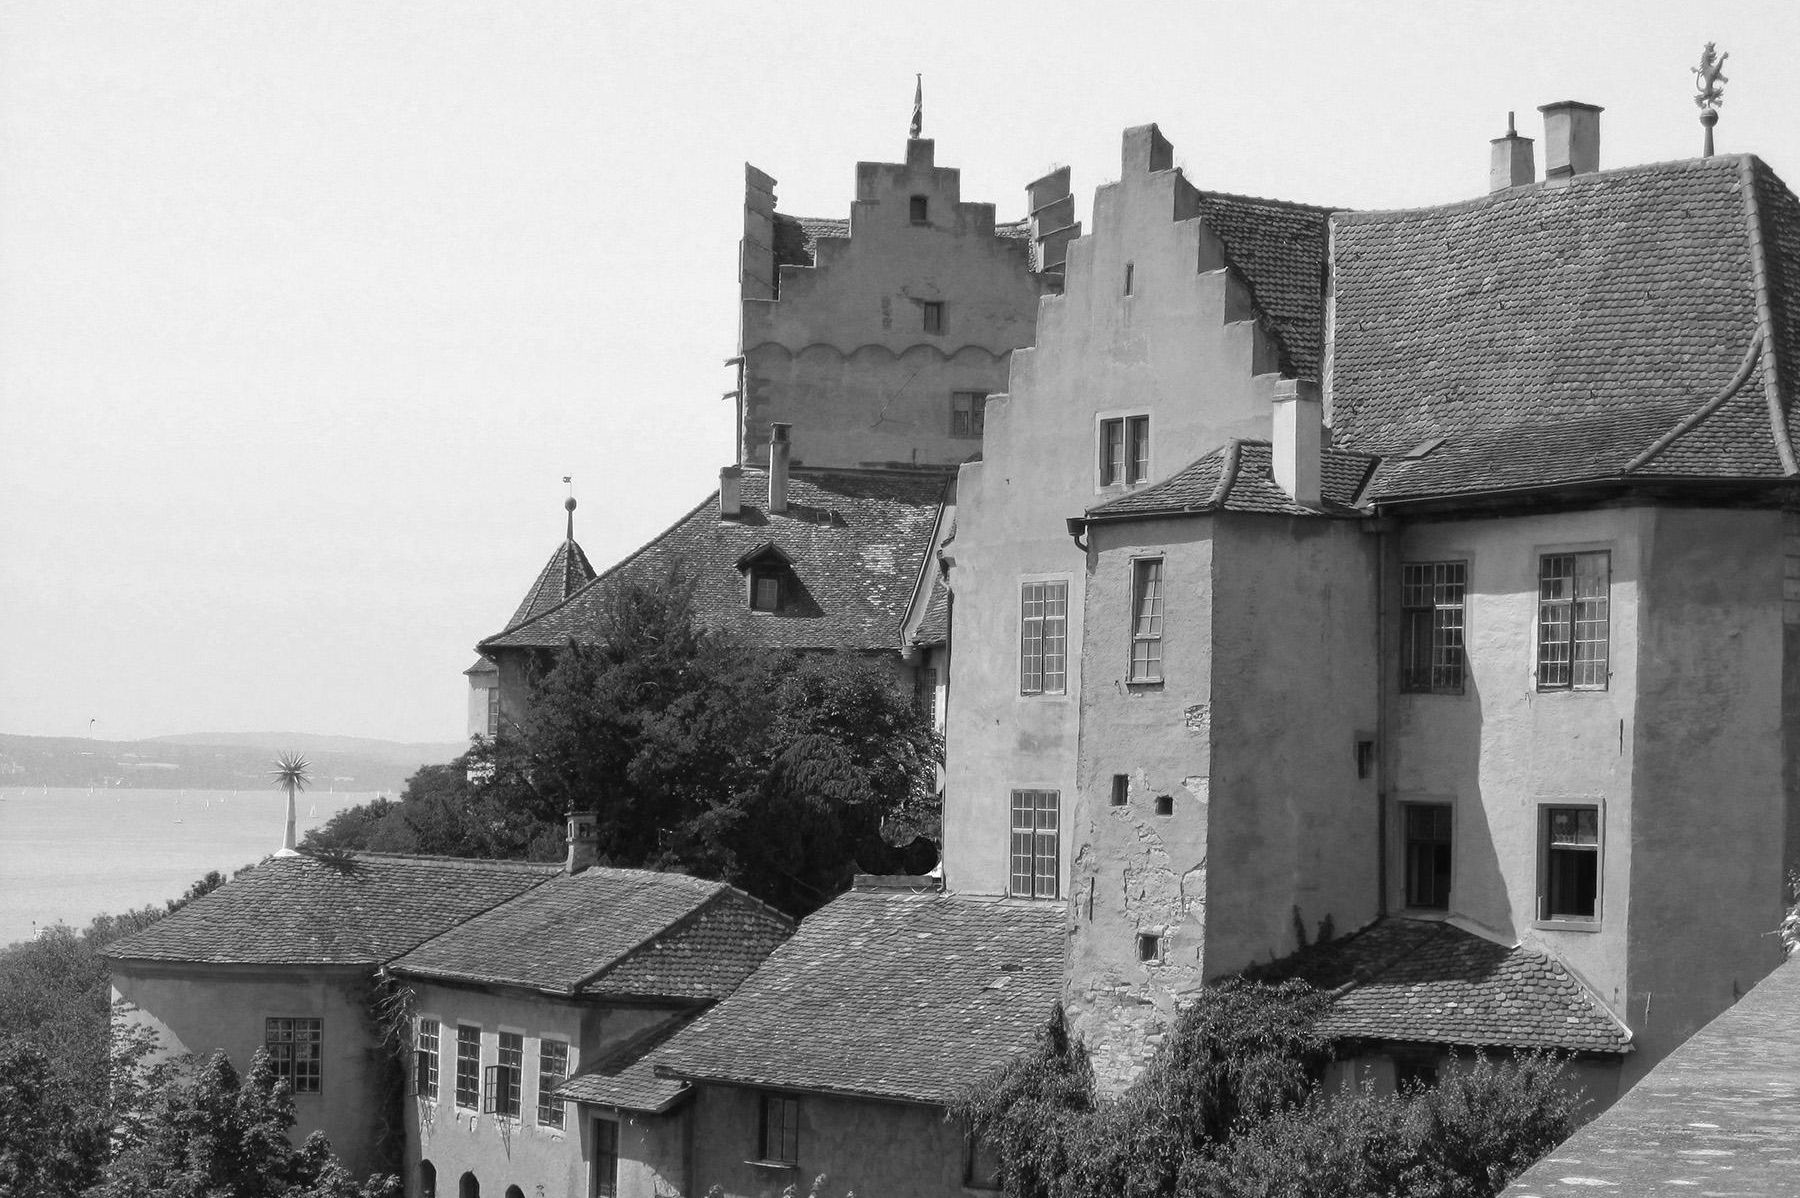 Image: Old Meersburg Castle with a view of Lake Constance